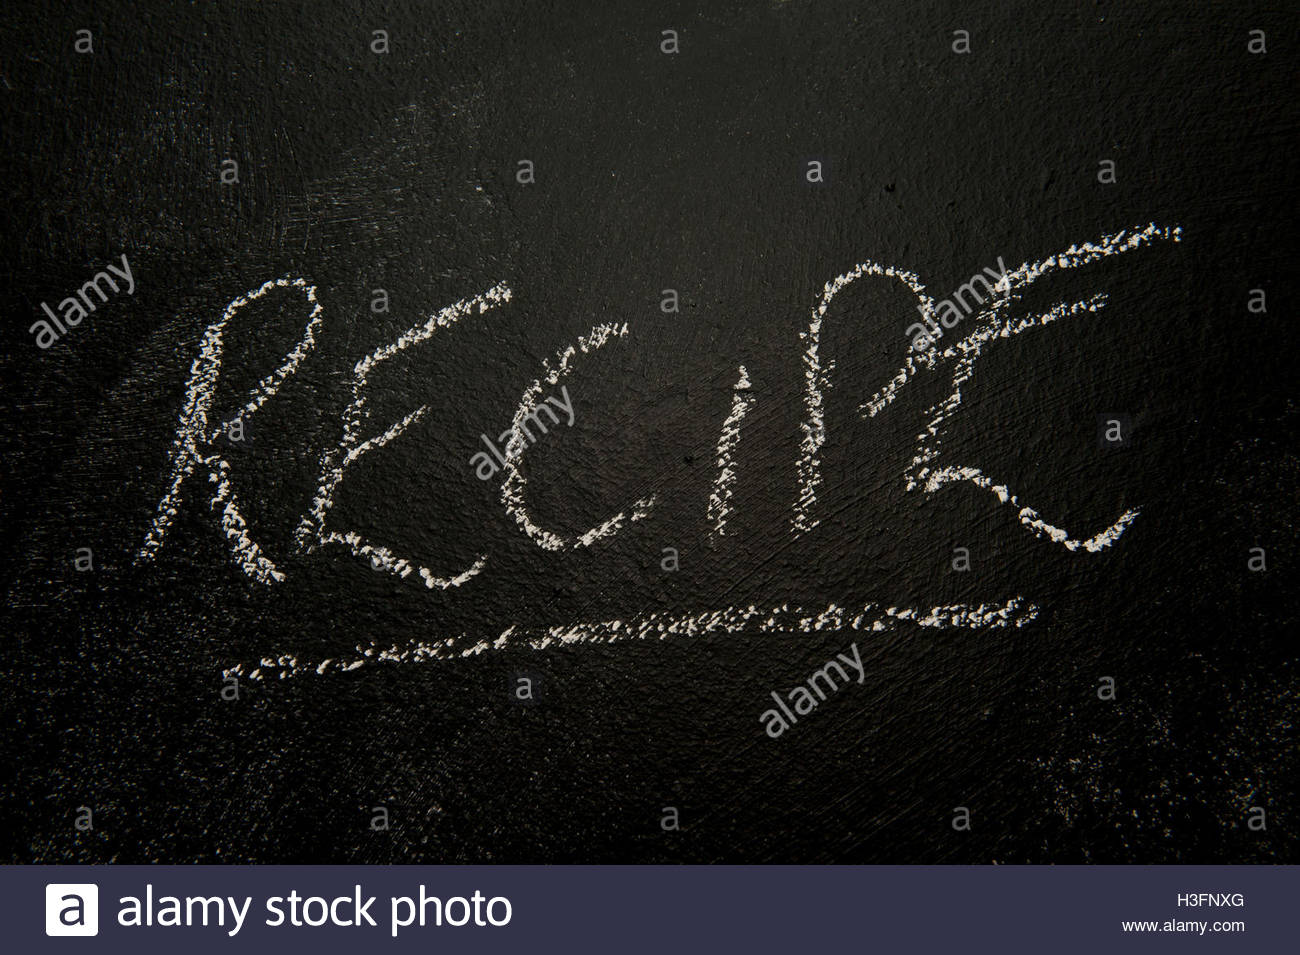 Recipe written on a blackboard - Stock Image